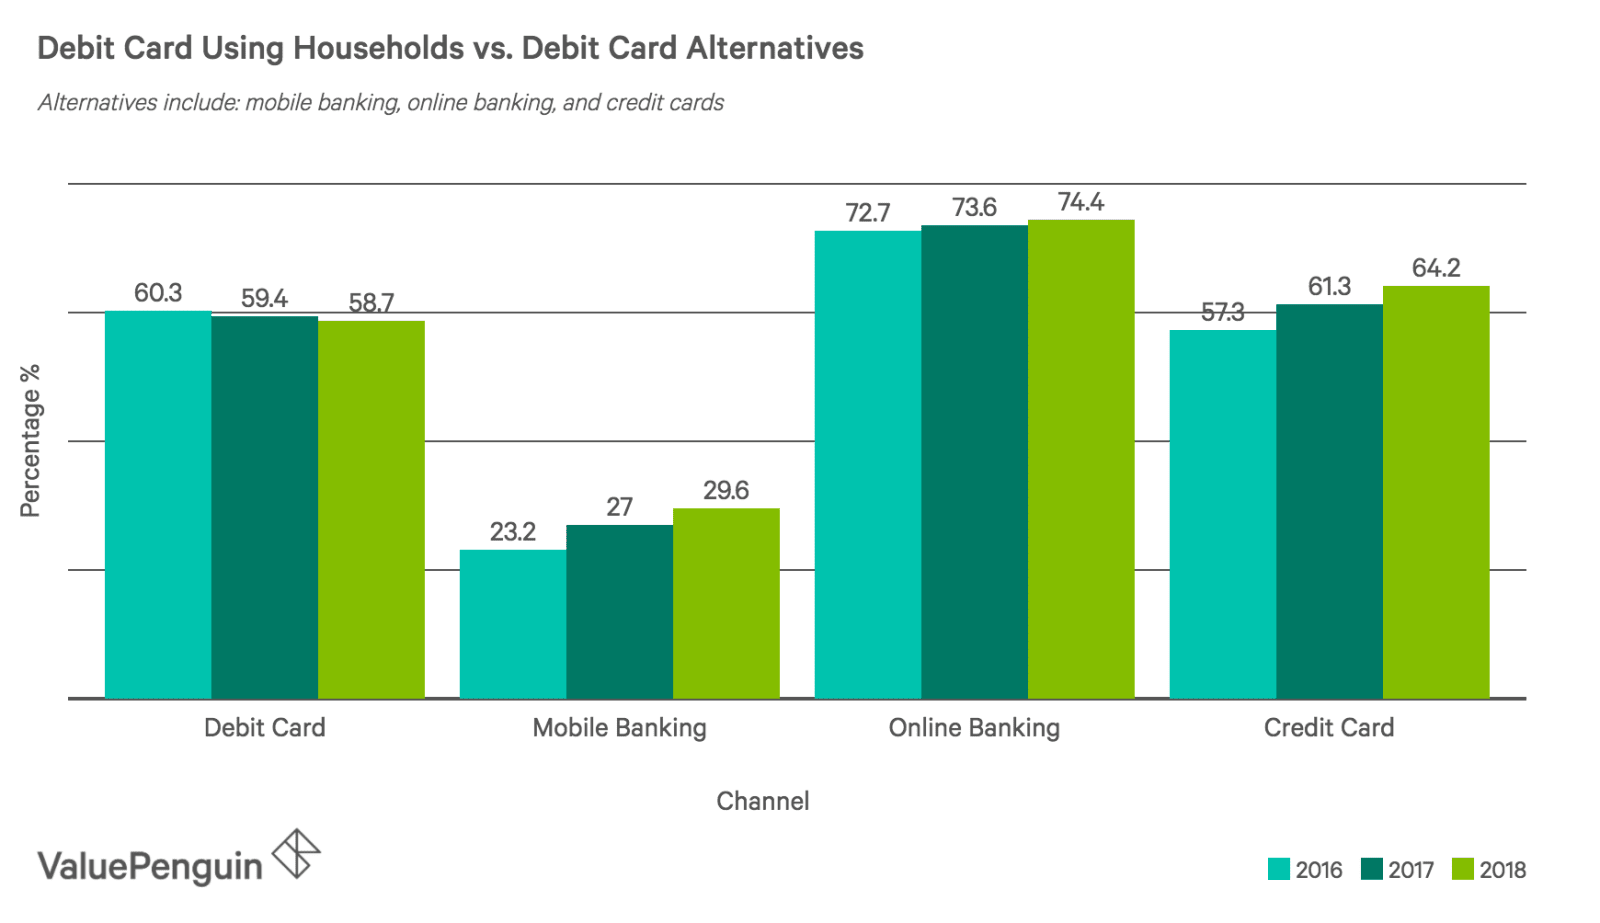 chart showing the declining trend in debit card use among U.S. households from 2016-2018